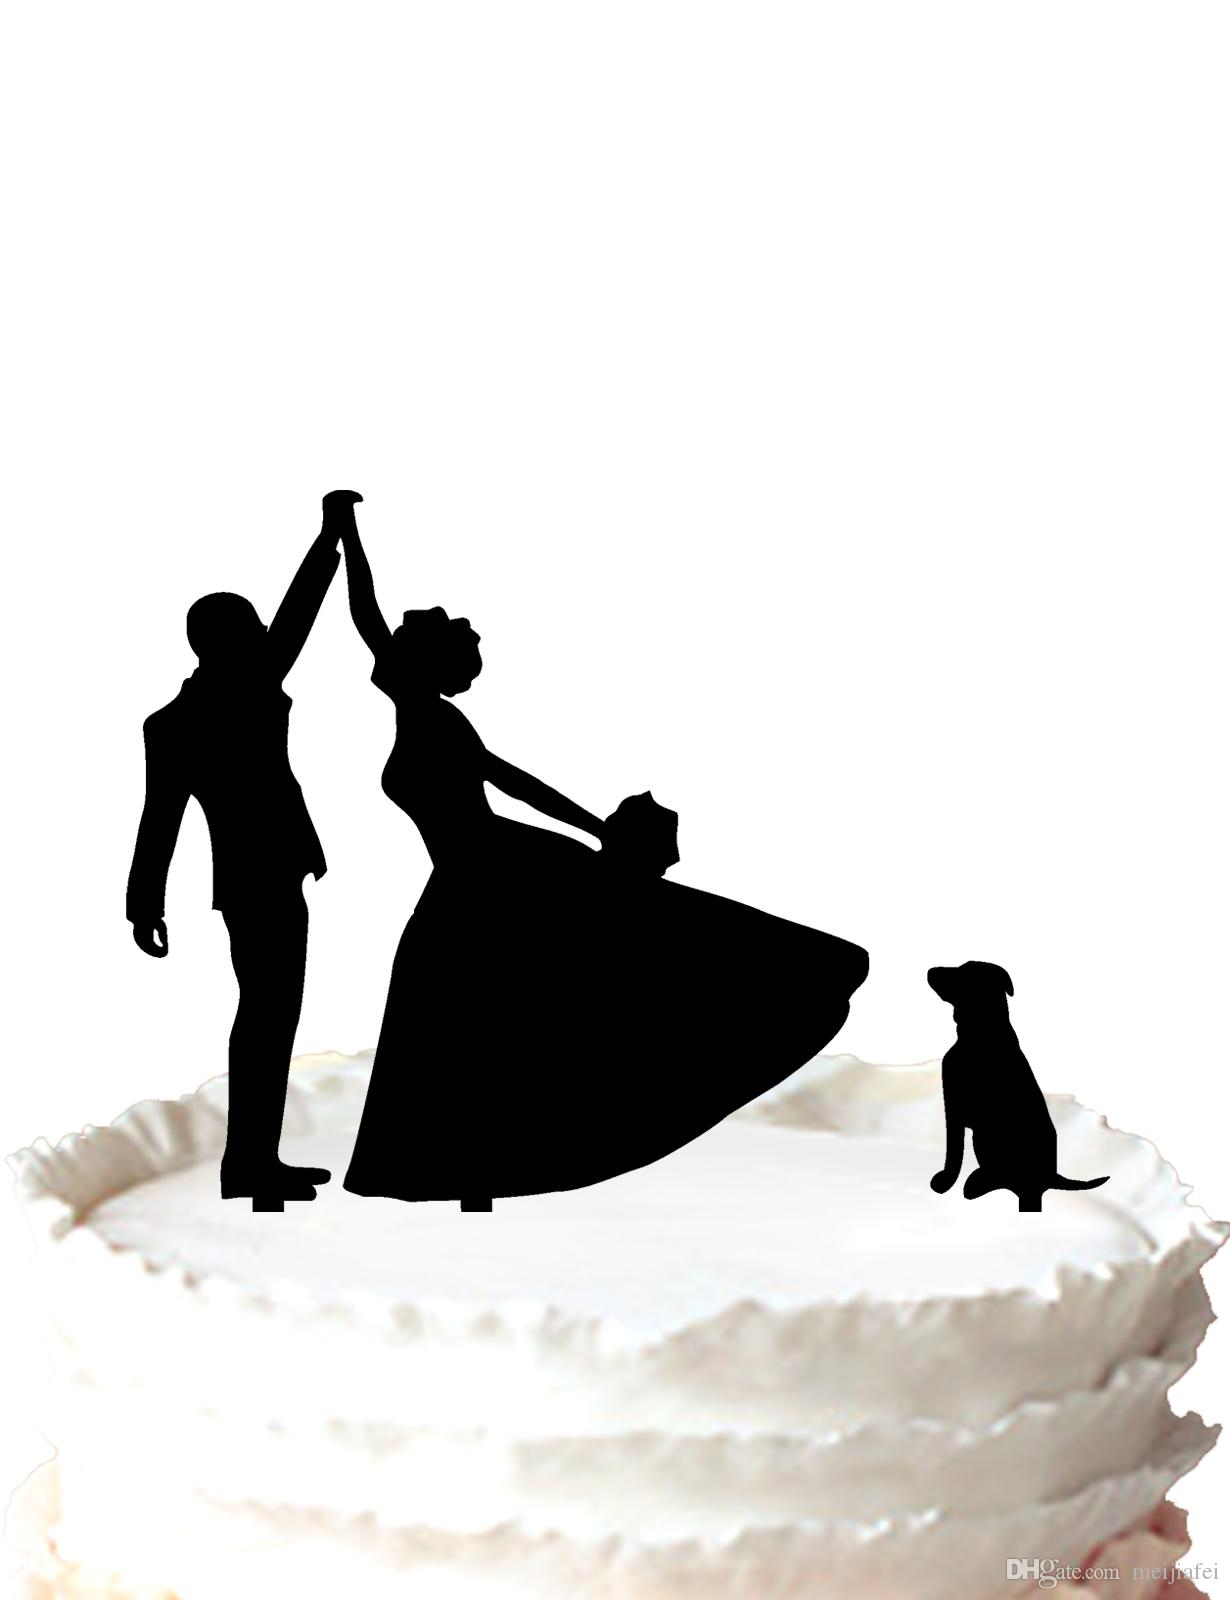 wedding cake topper bride and groom highfive silhouette with labrador dogfor option labrador dog cake topper wedding cake topper bride groom cake topper